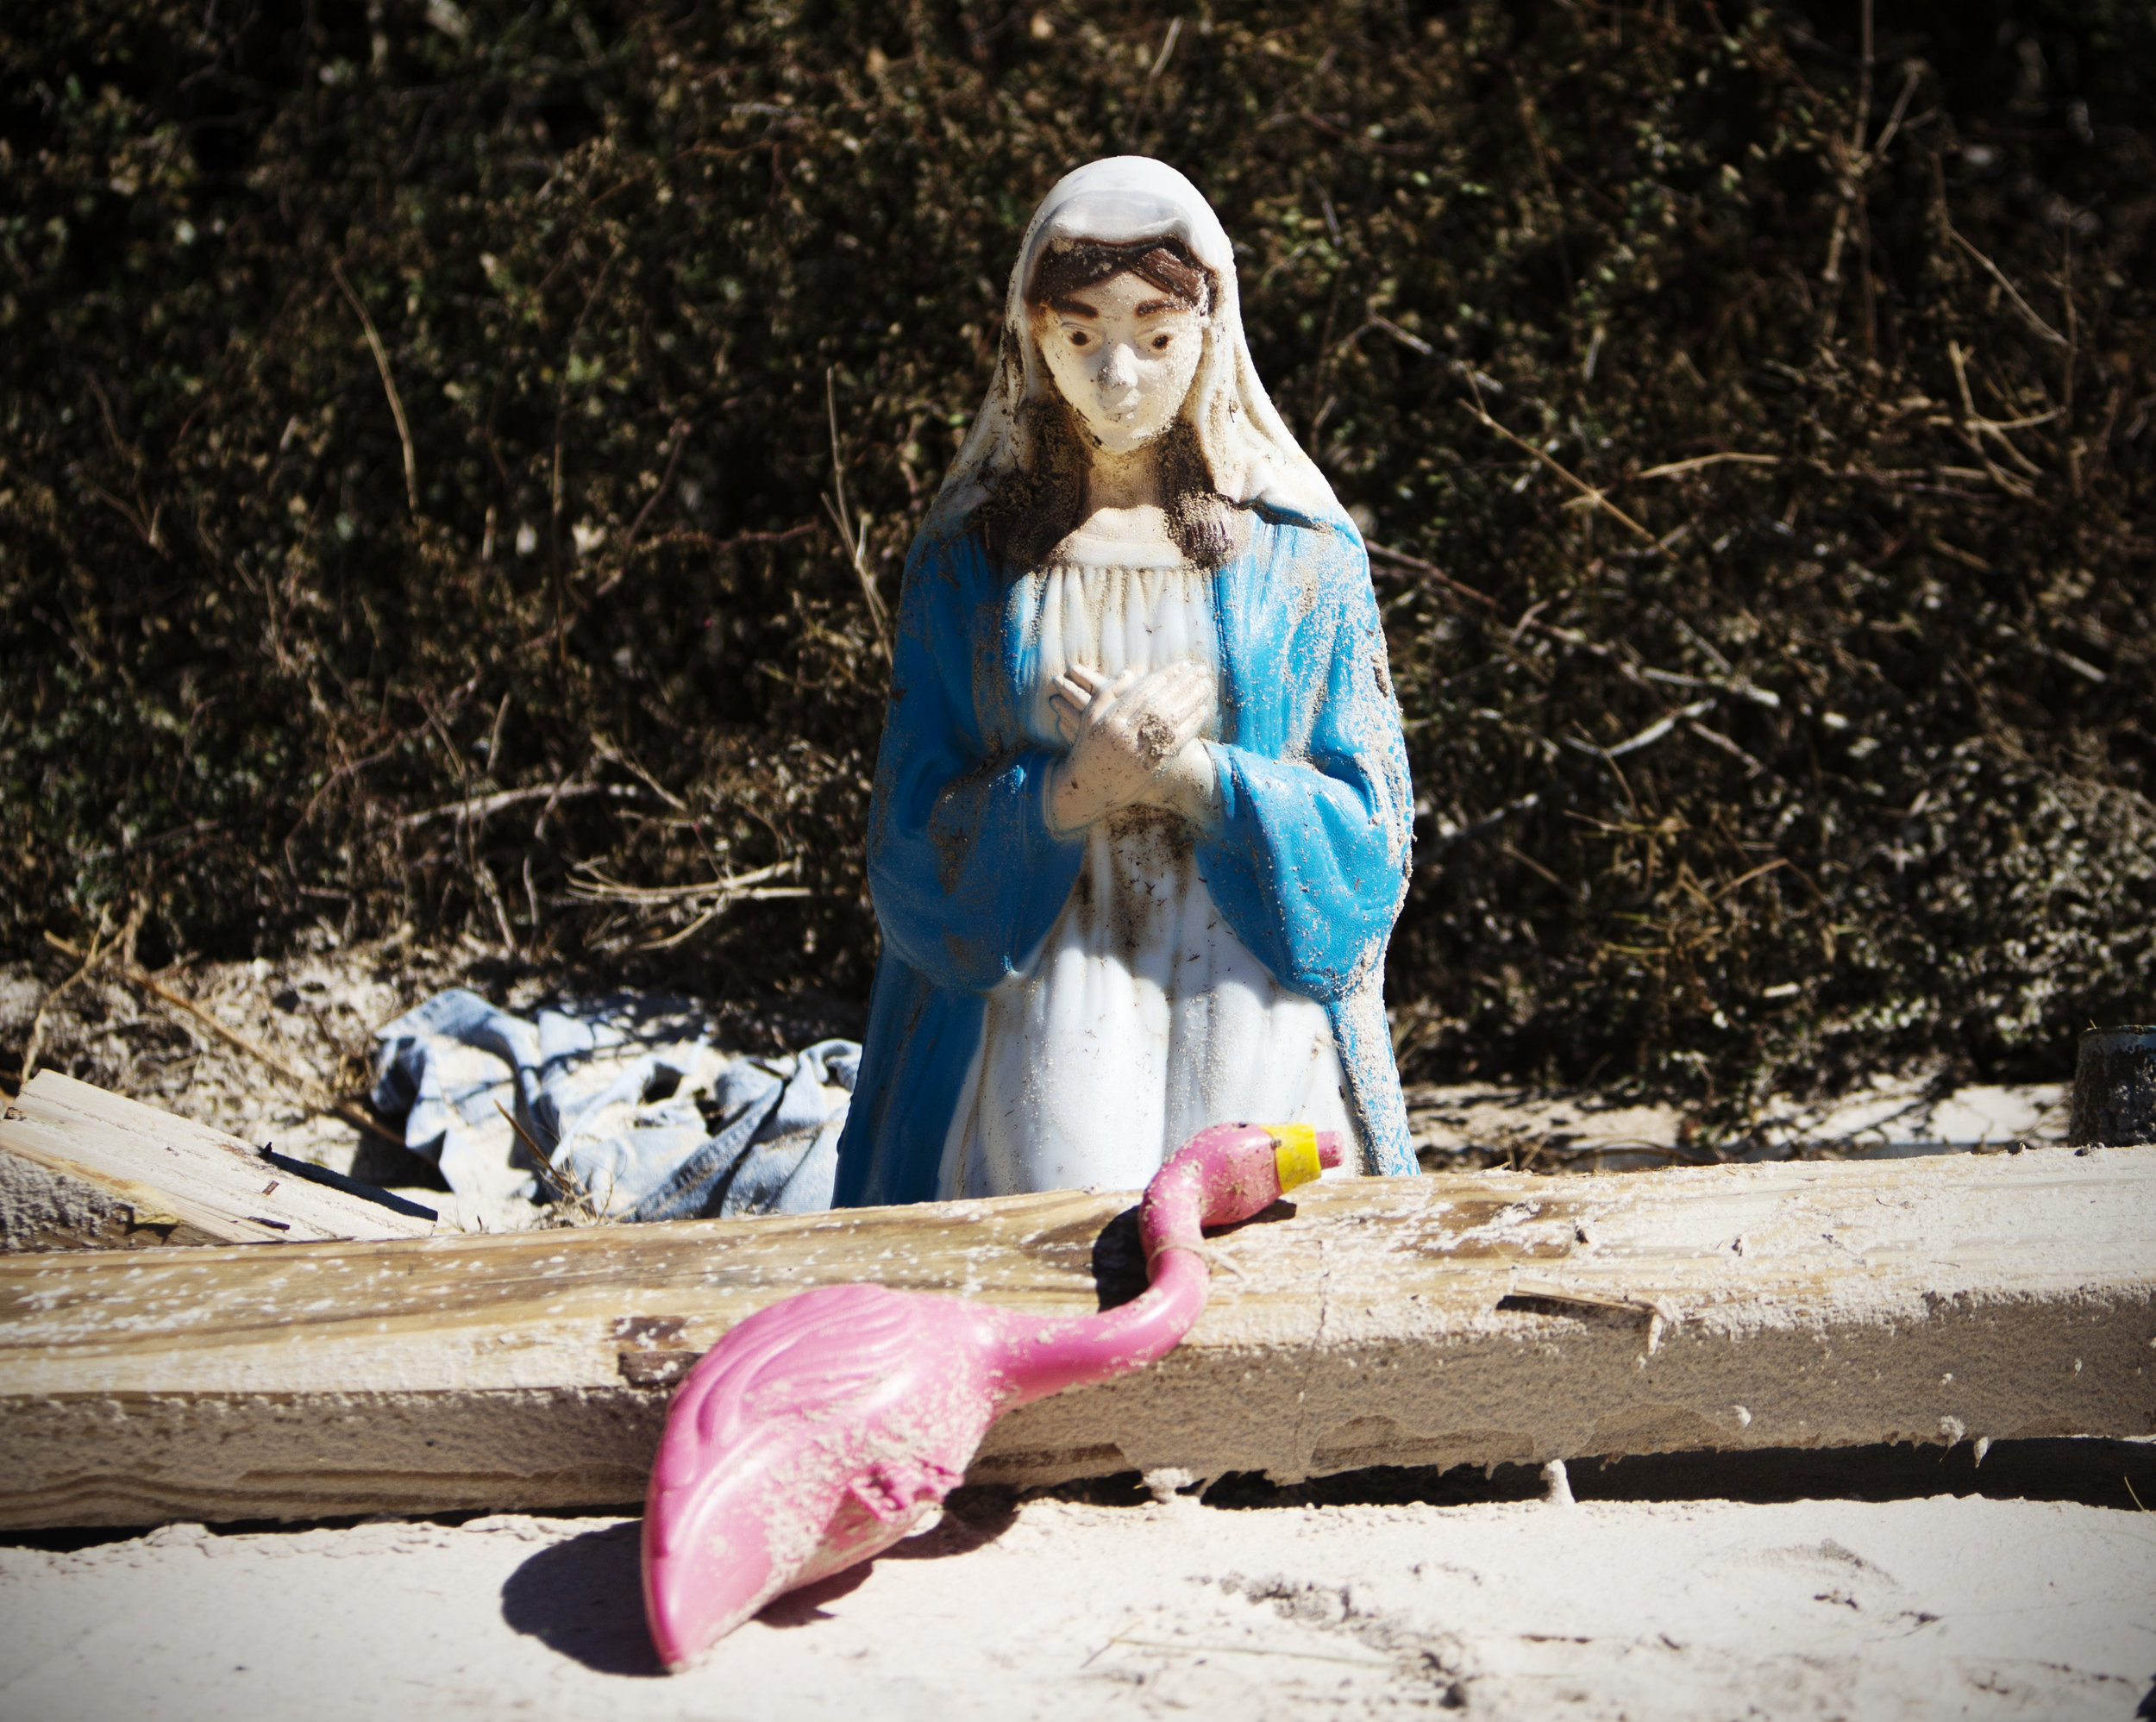 A Virgin Mary sits over a plastic flamingo near debris on Alligator Drive in Alligator Point on October 12, 2018.